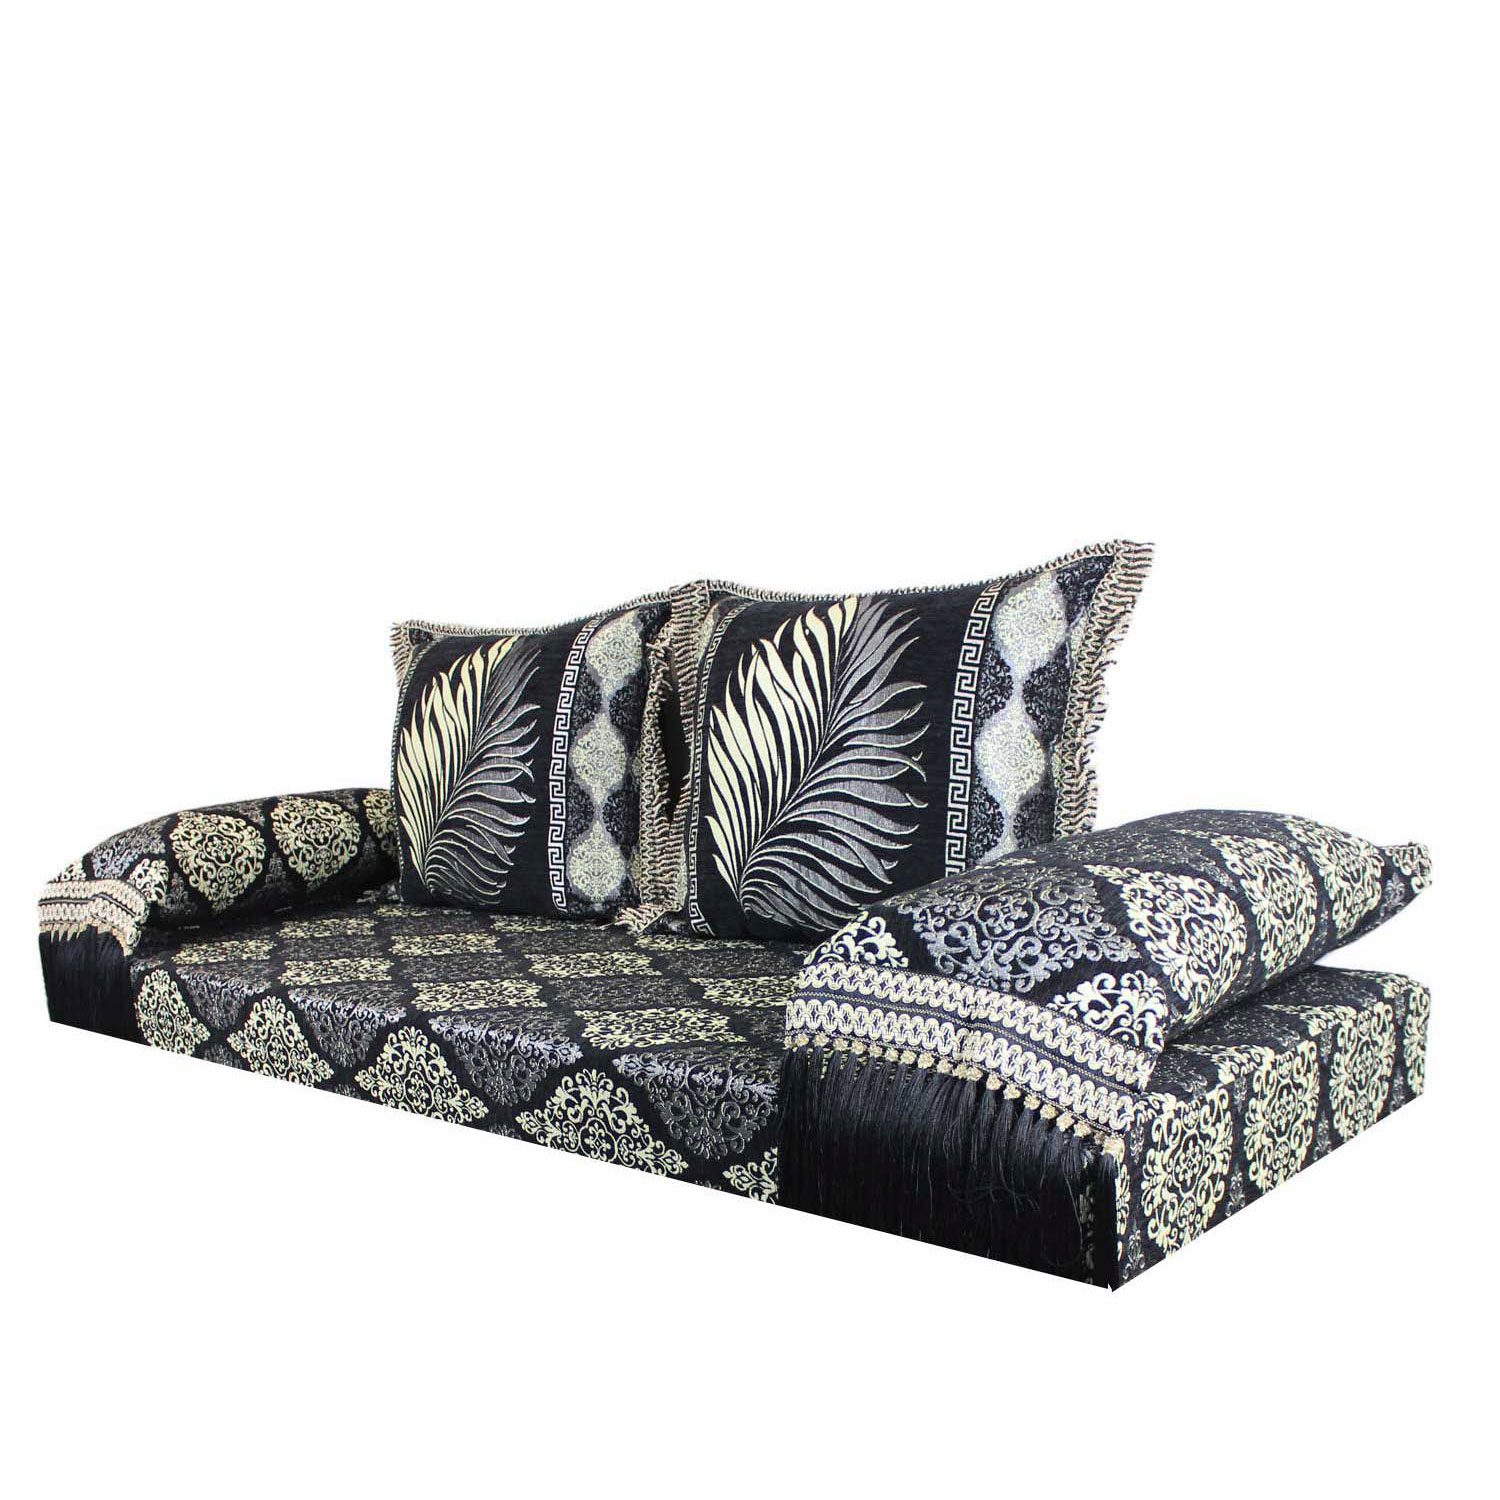 orientalisches sofa angora bei ihrem orient shop casa moro. Black Bedroom Furniture Sets. Home Design Ideas